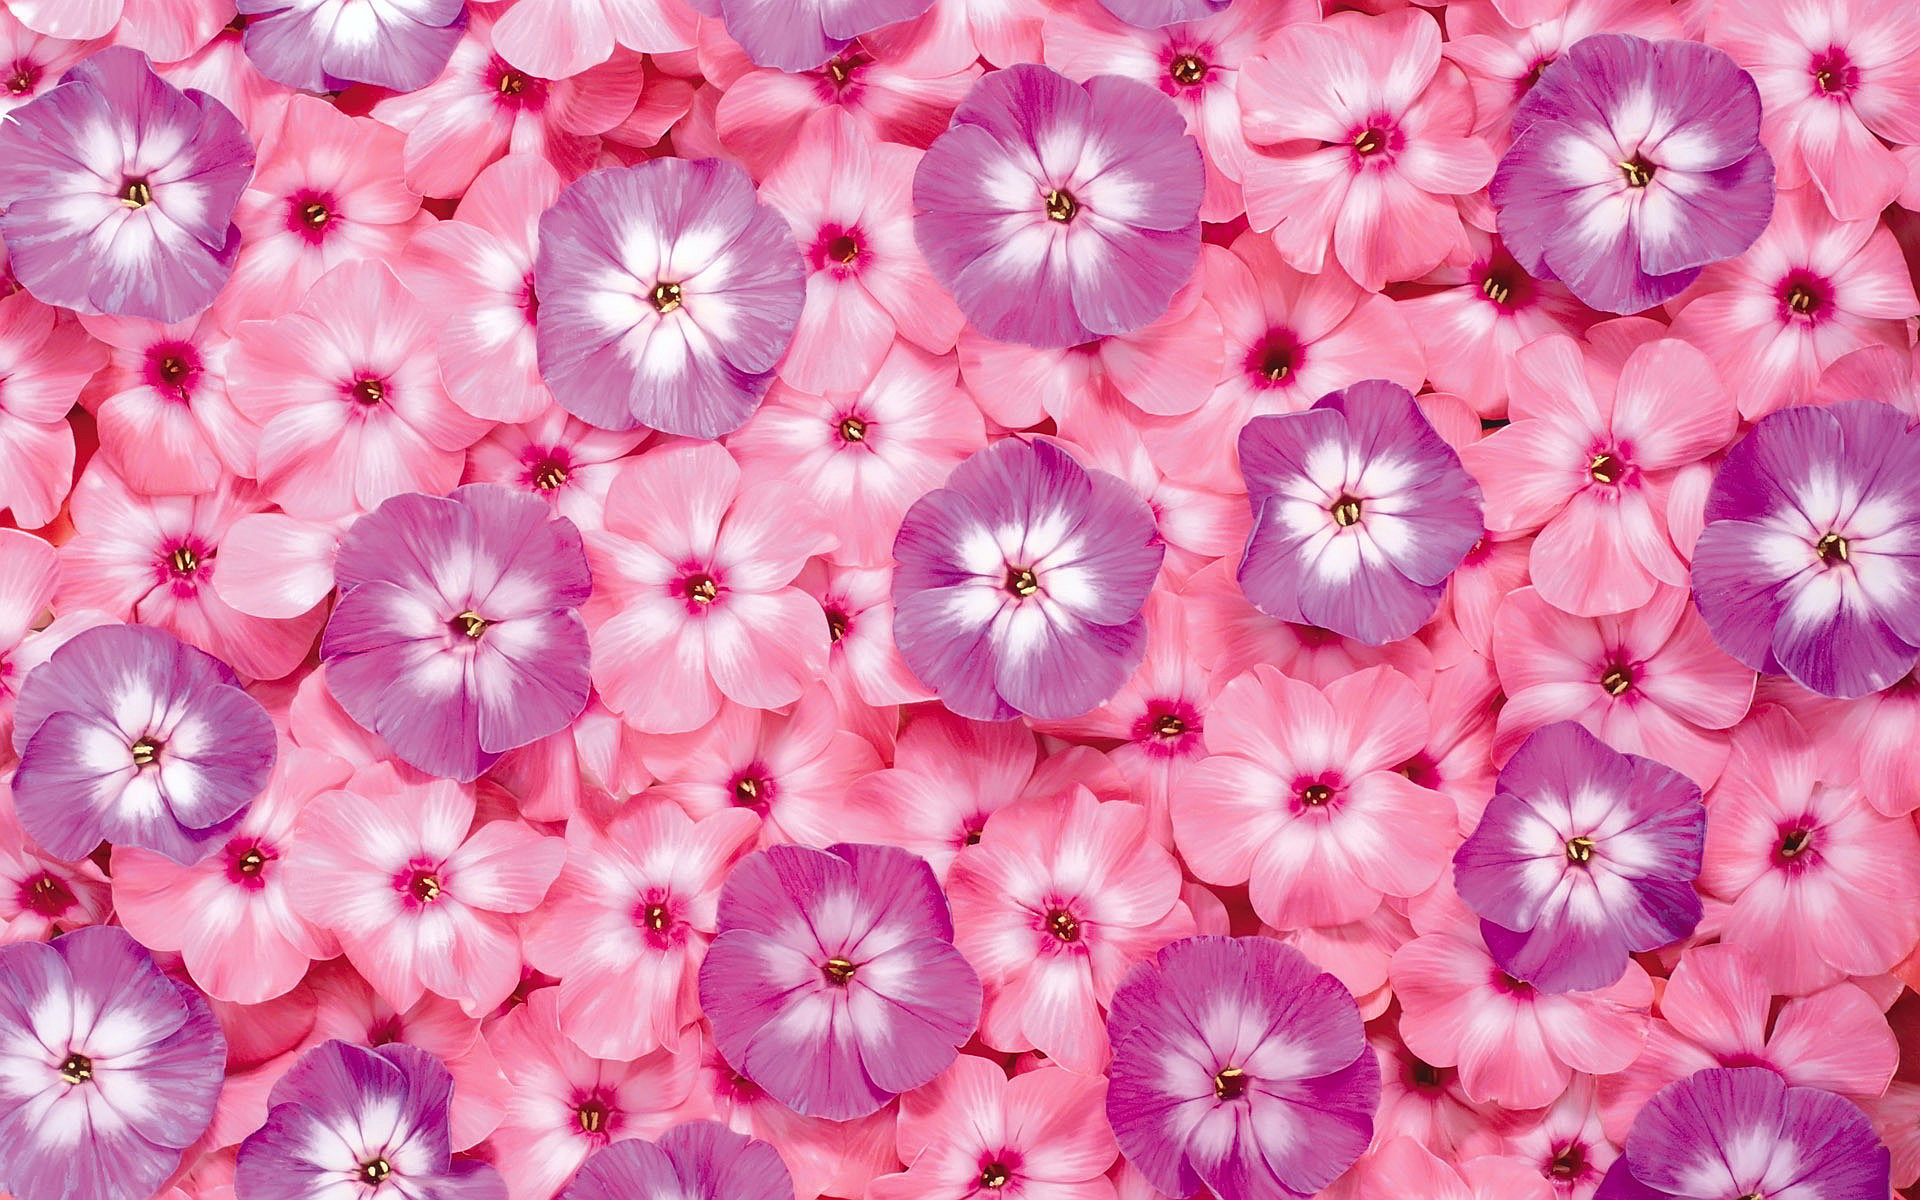 Flowers pink wallpaper 1920x1200 22998 flowers pink dhlflorist Choice Image